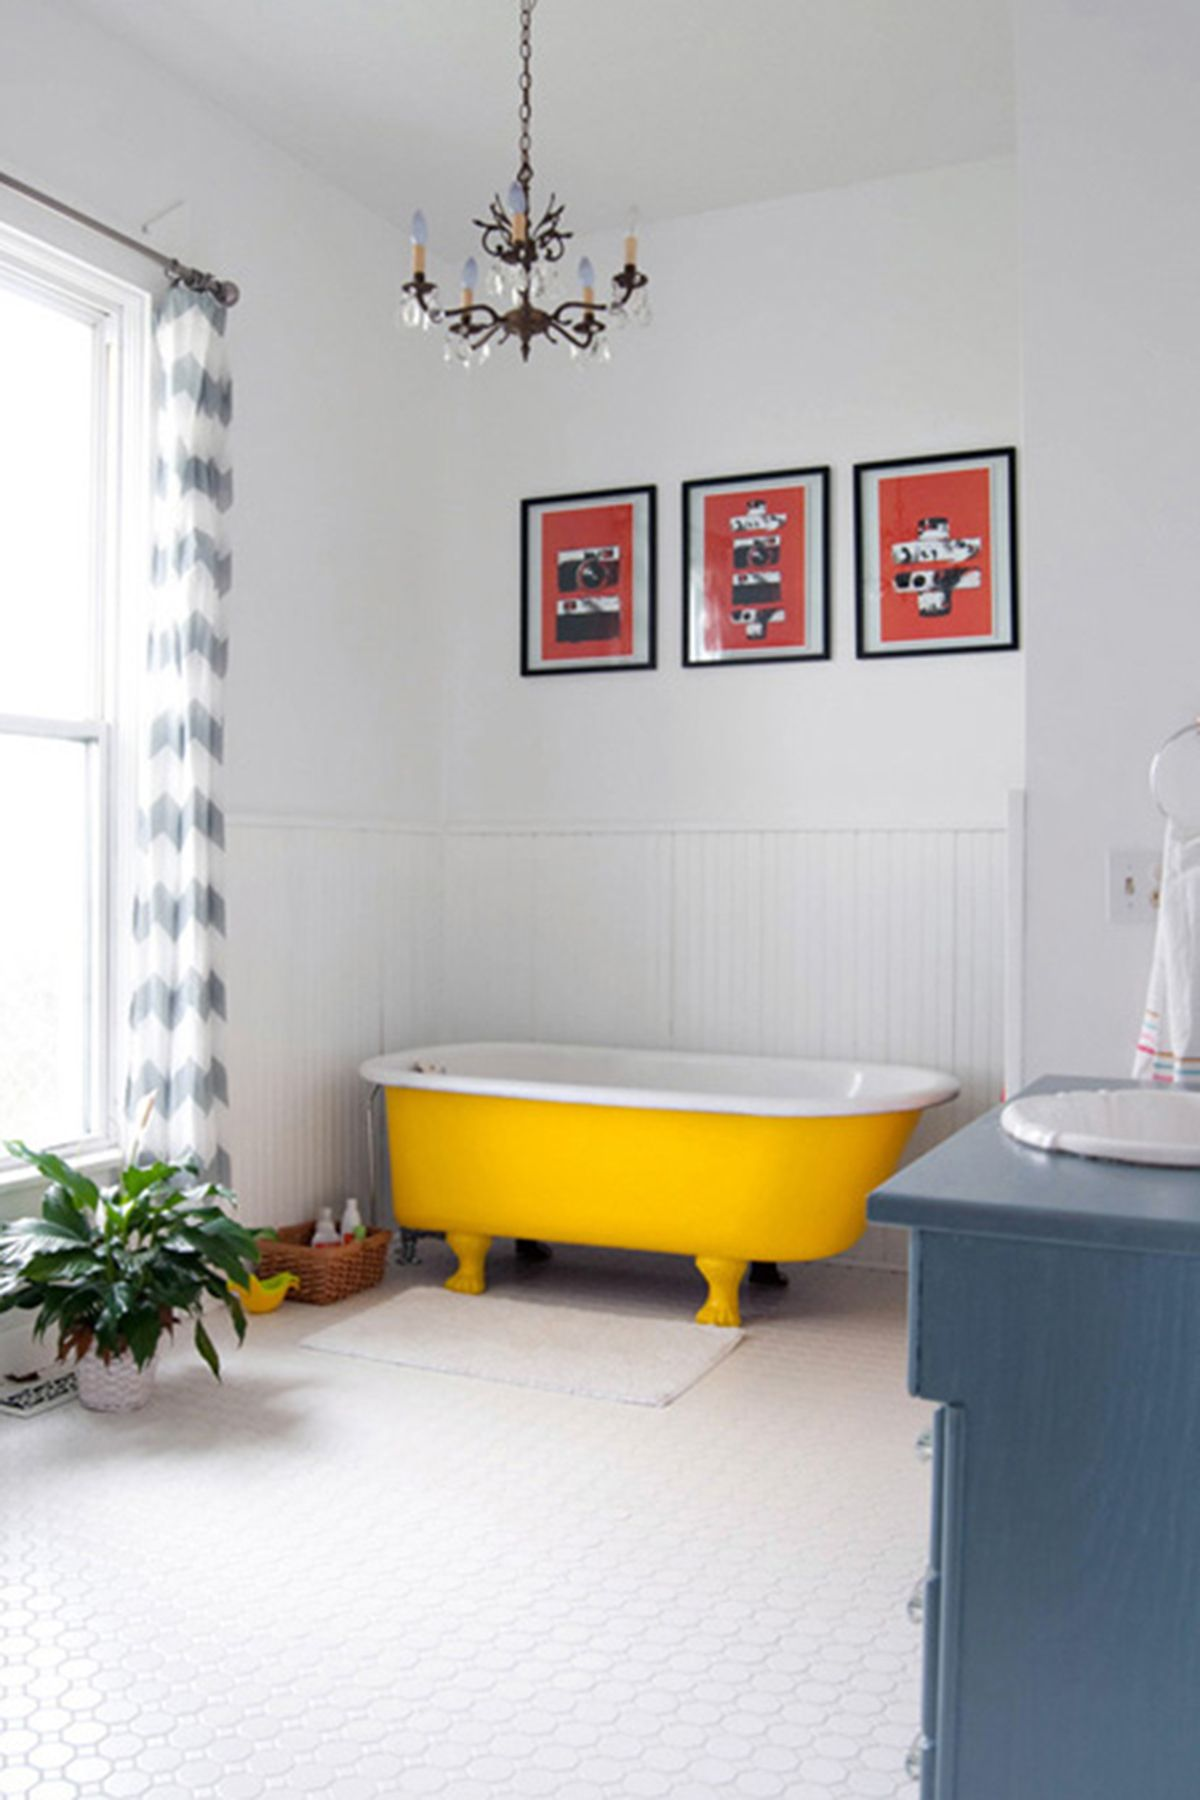 bathroom, white floor tiles, white wall, yellow tub, blue cabinet, white sink, white wainscoting wall